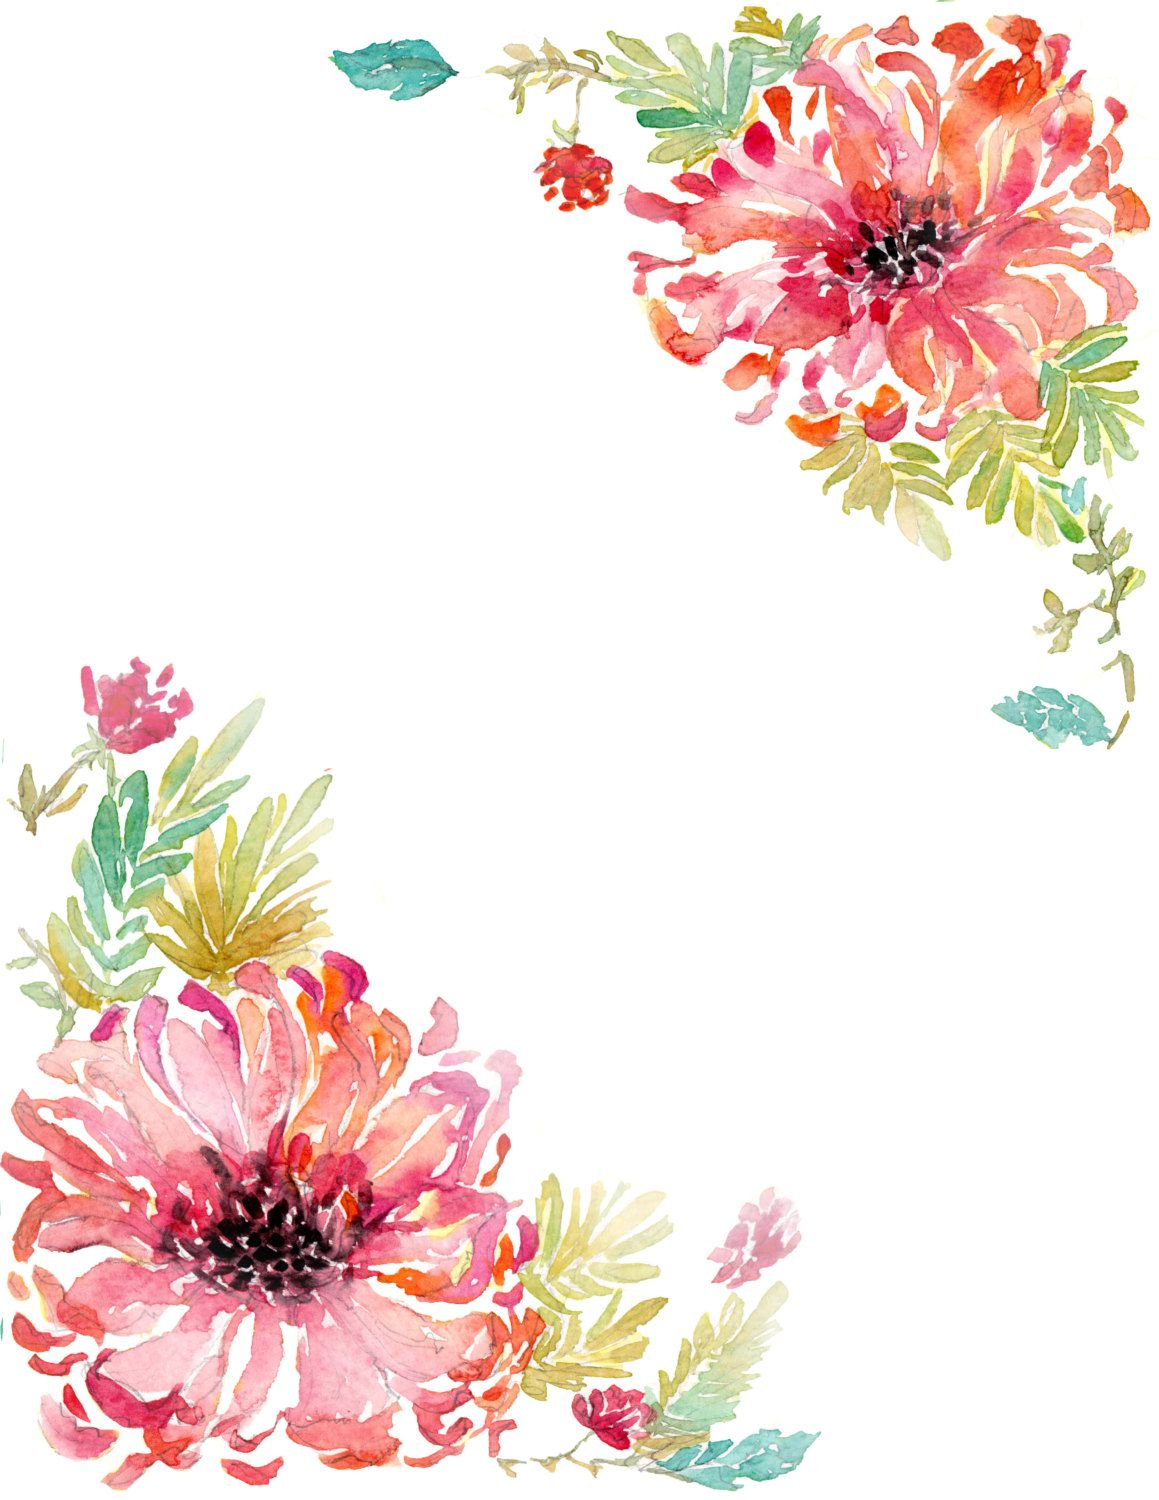 Downloadable watercolor dahlia border by WaternColour on Etsy Текстуры